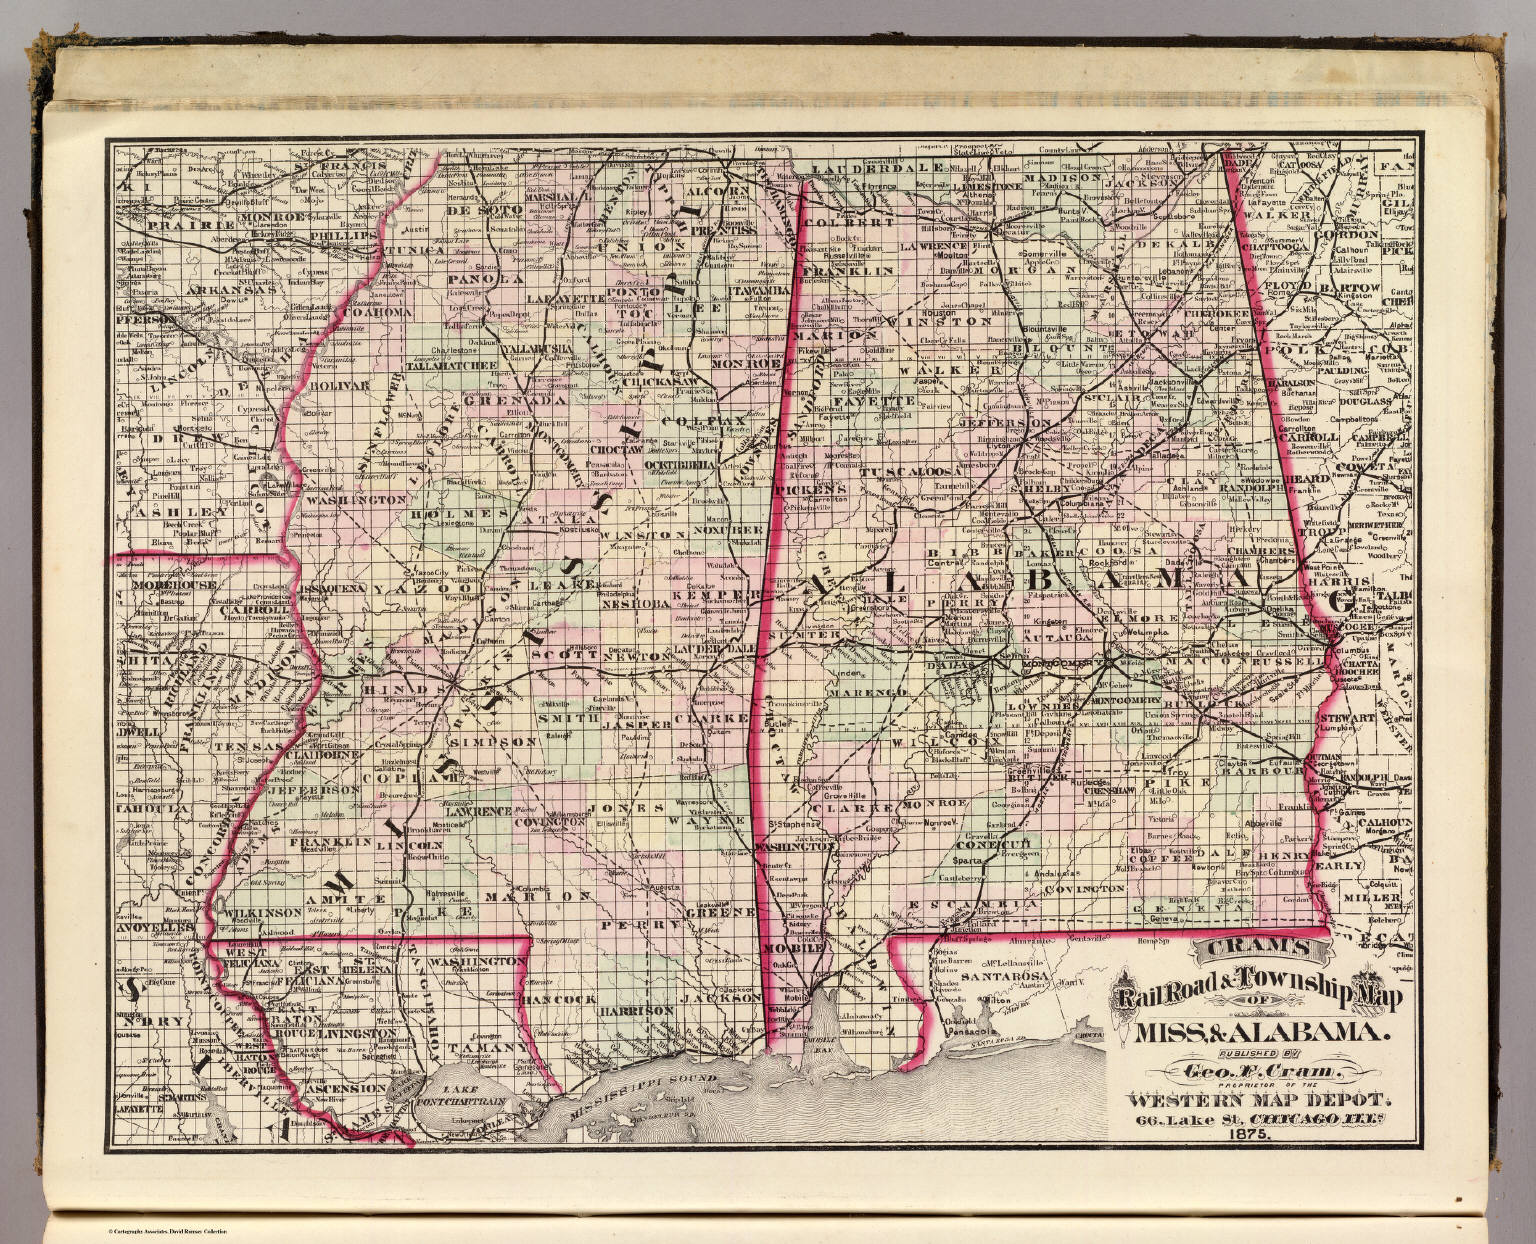 Alabama Cram Atlas Company - Road map of alabama